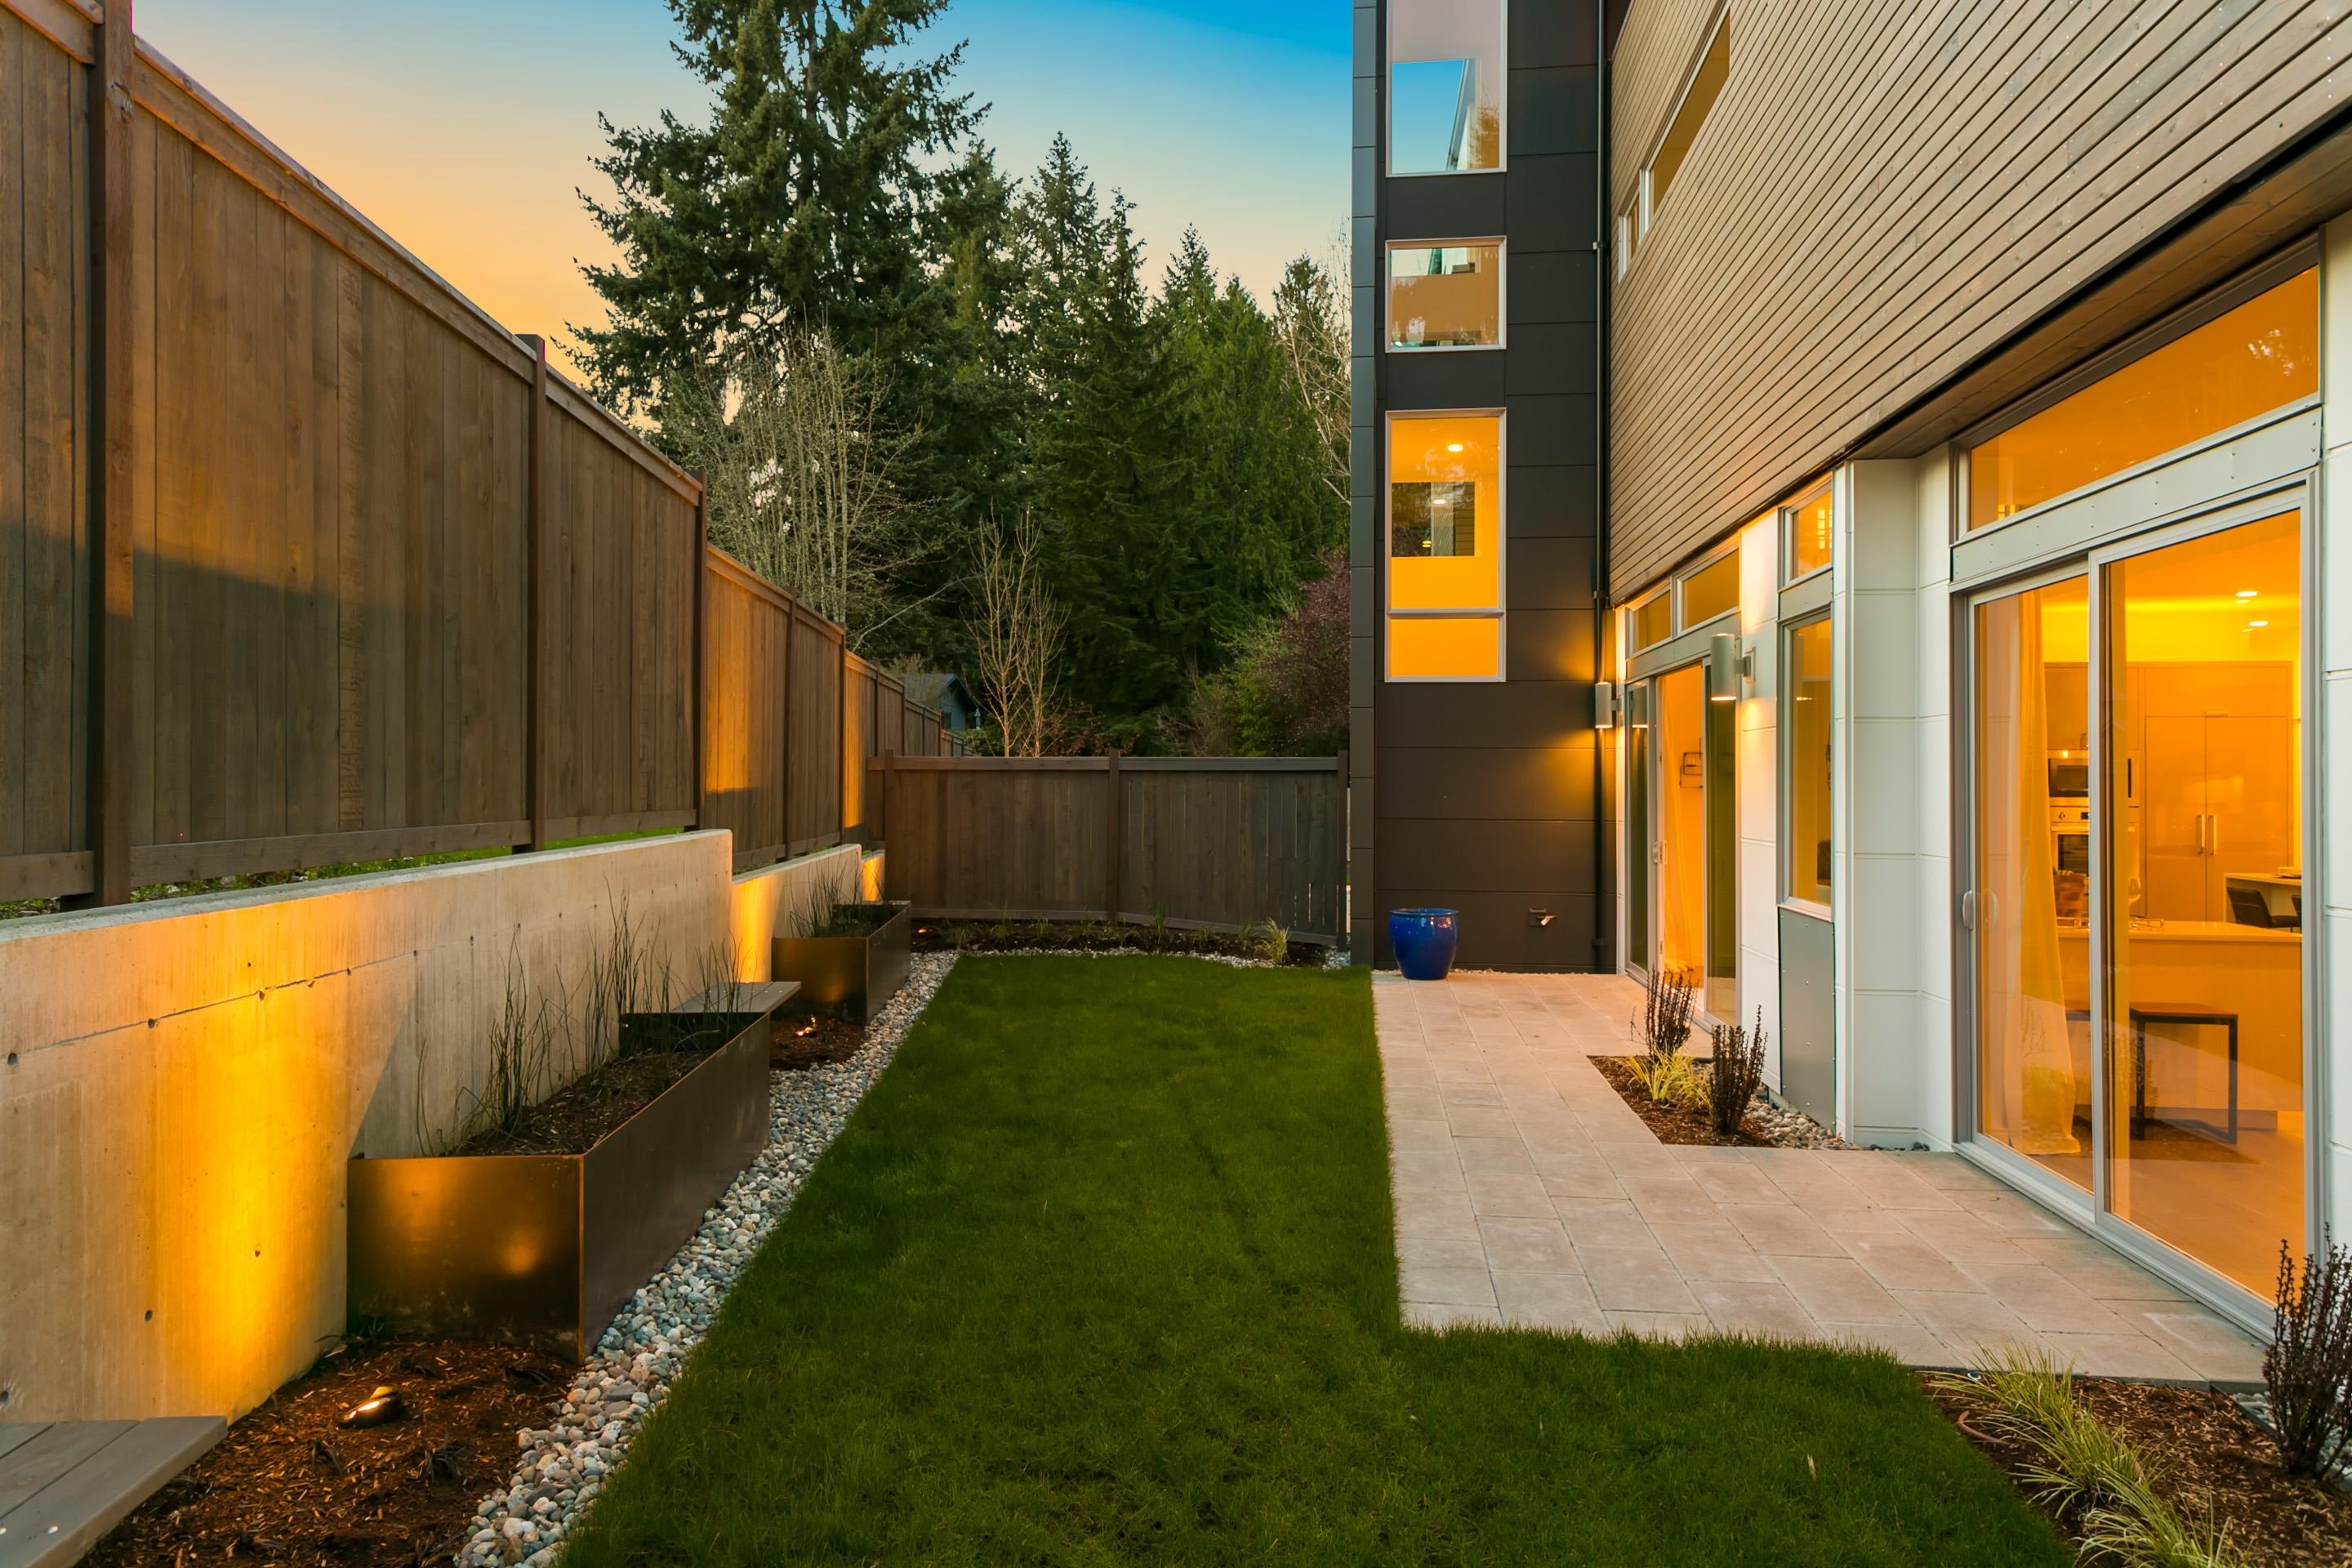 The final home we're profiling ahead of this weekend's Modern Home Tour is the Au Courant House in Redmond! This 3 bed/3.5 bath home was built by Noble Ridge Construction, and designed by Medici Architects. The home uses the entire 3,874 square-foot lot to capture a cozy private space on the main level, and a rec room that walks out onto a 600 sq-ft roof top deck with 180 degree view of the Cascade Mountains up top.{ }Each day this week we are going to be featuring homes from the 2018 Seattle Modern Home tour, happening this Saturday, April 28 throughout Seattle. Multiple homes will be showcased, all accessible from ticket-holders between 11 a.m. to 5 p.m. on that Saturday. Tickets are still on sale, starting at $40 at https://bit.ly/2qKRGYs (Image: Noble Ridge Construction Inc.)